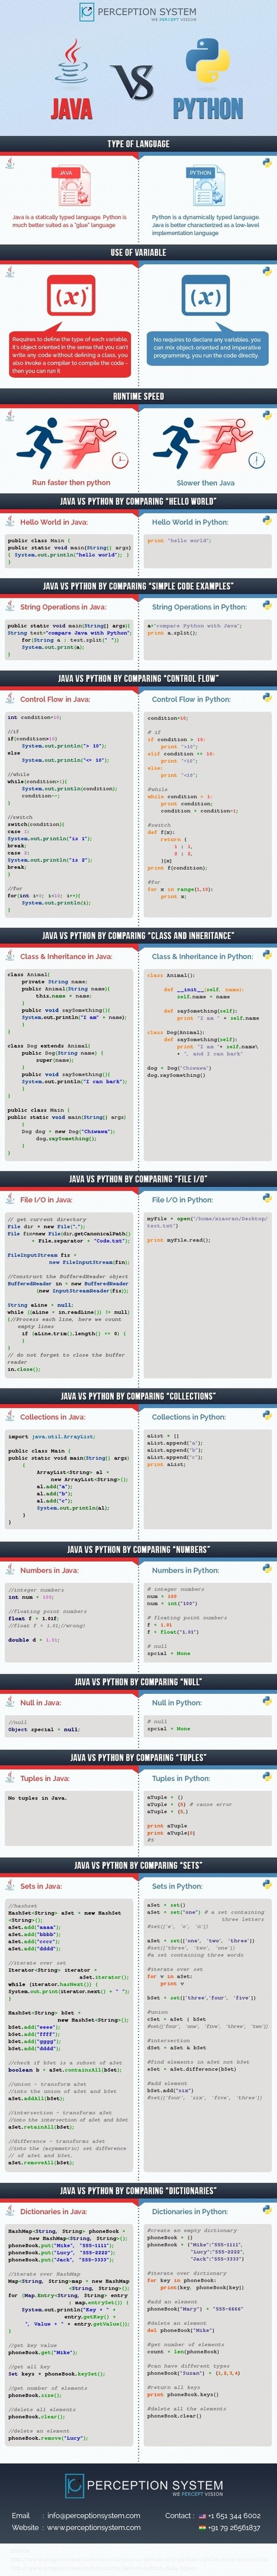 Java vs Python - Which Programming Language Should Learn First | Bazaar | Scoop.it